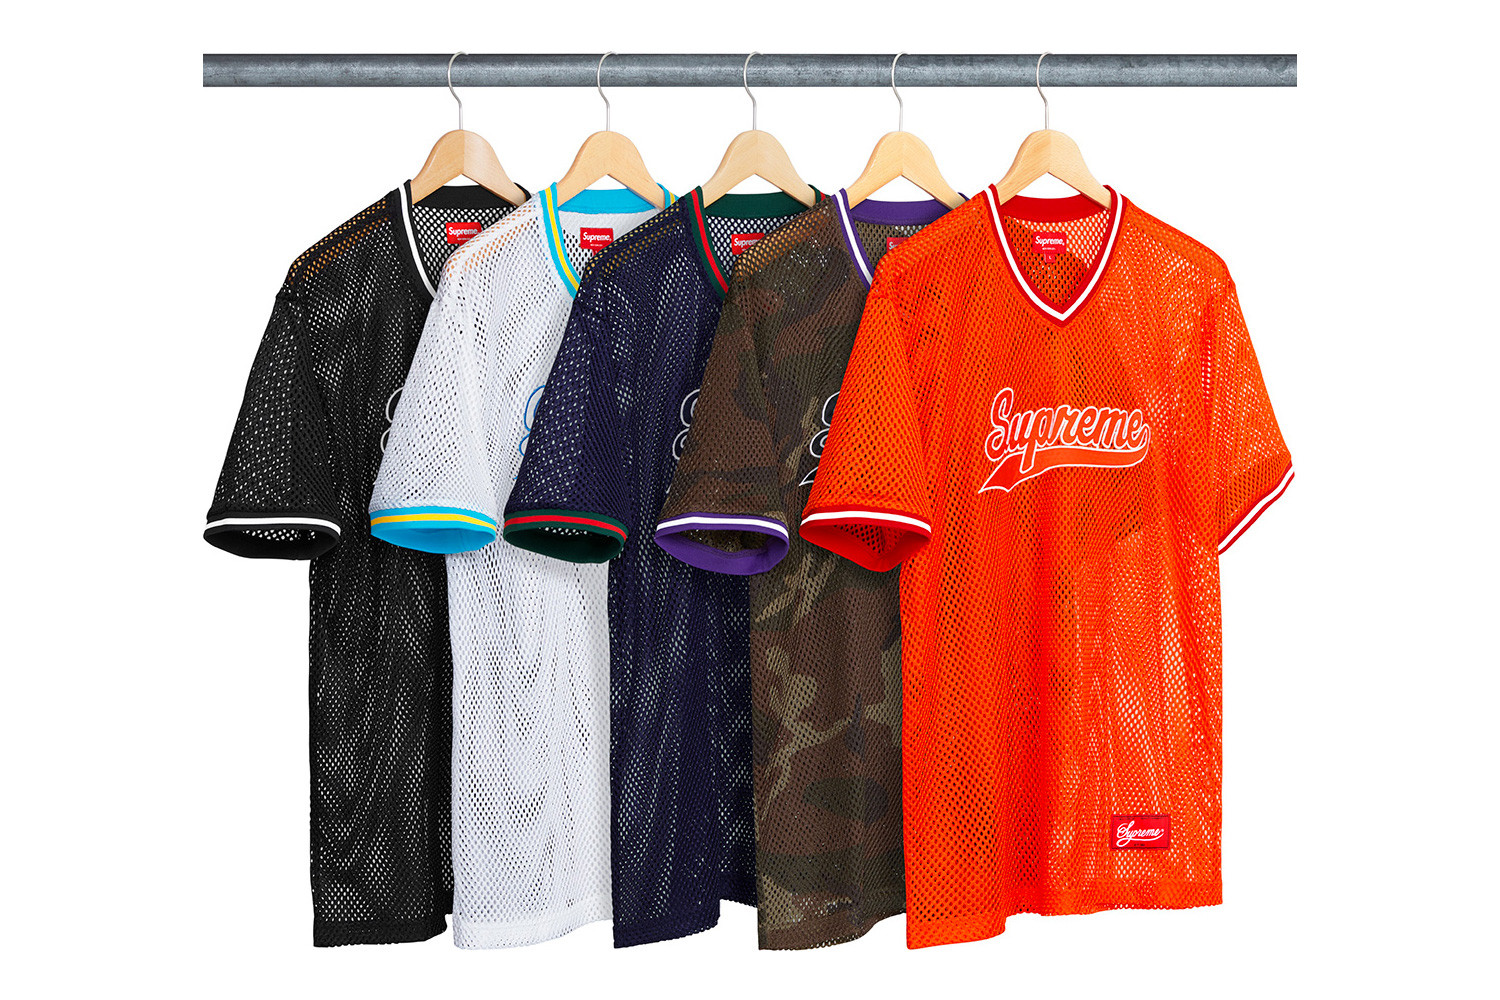 Supreme Spring/Summer 2018 Drop 19 Release Info off white rimowa palace moncler fragment bape popeye hiroshi fujiwara virgil abloh cav empt slam jam tres bien arc'teryx veilance new york magazine only ny